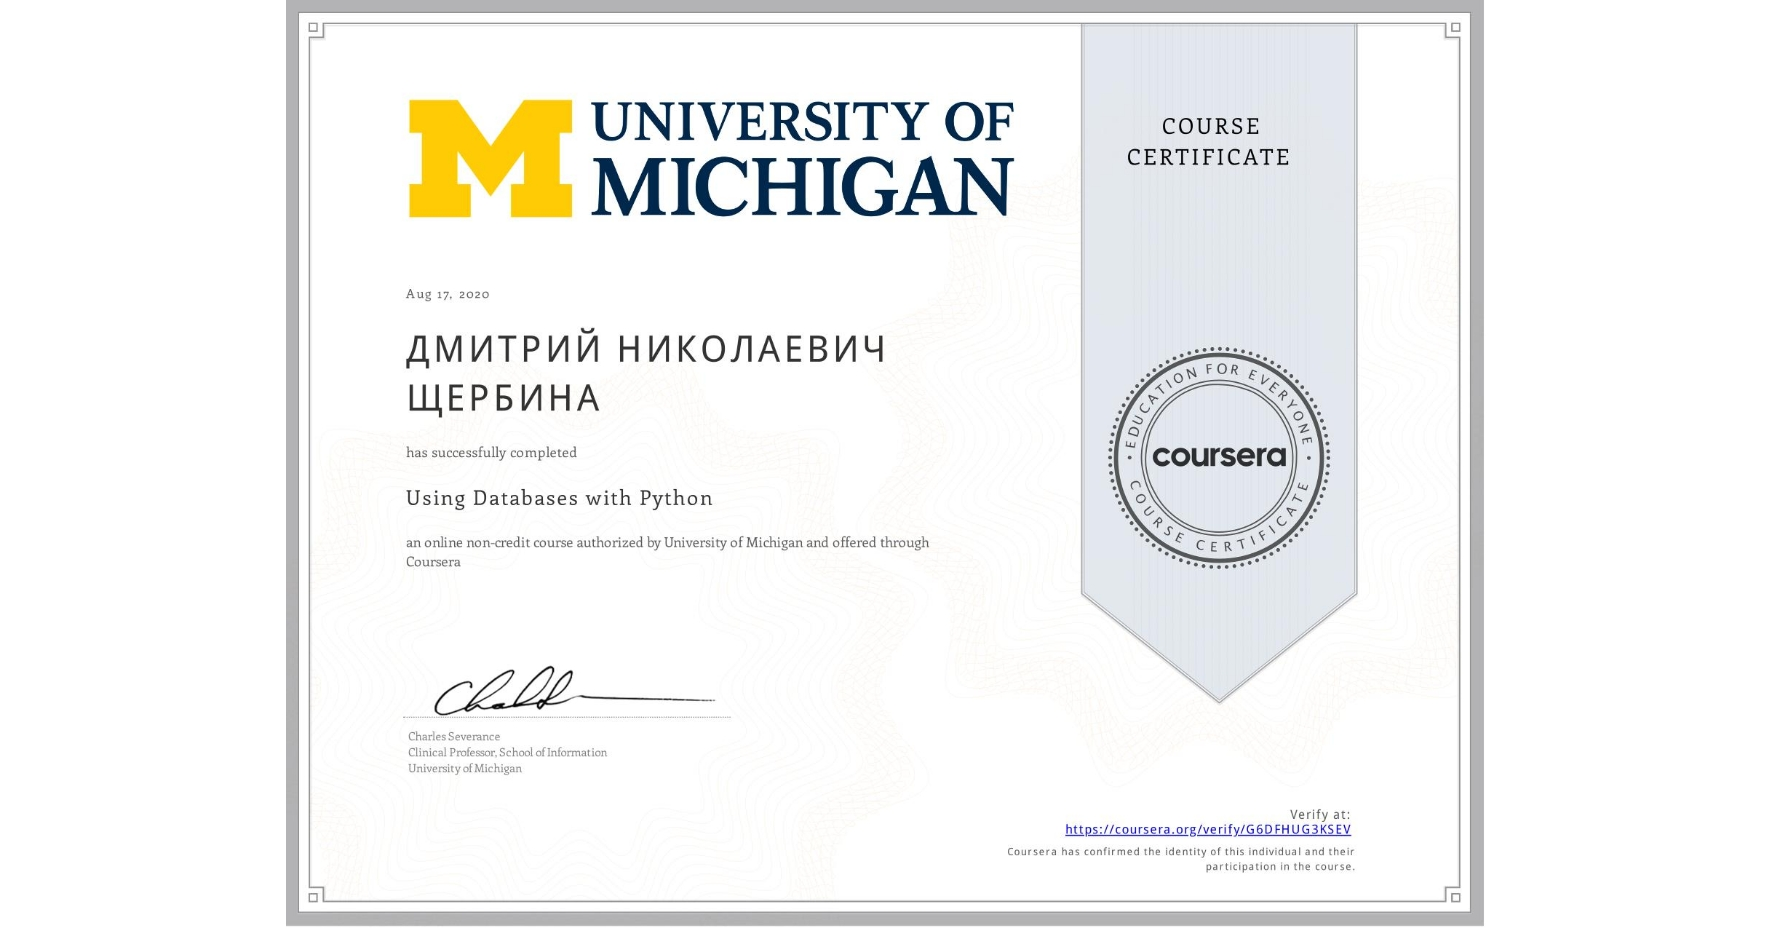 View certificate for ДМИТРИЙ НИКОЛАЕВИЧ ЩЕРБИНА, Using Databases with Python, an online non-credit course authorized by University of Michigan and offered through Coursera